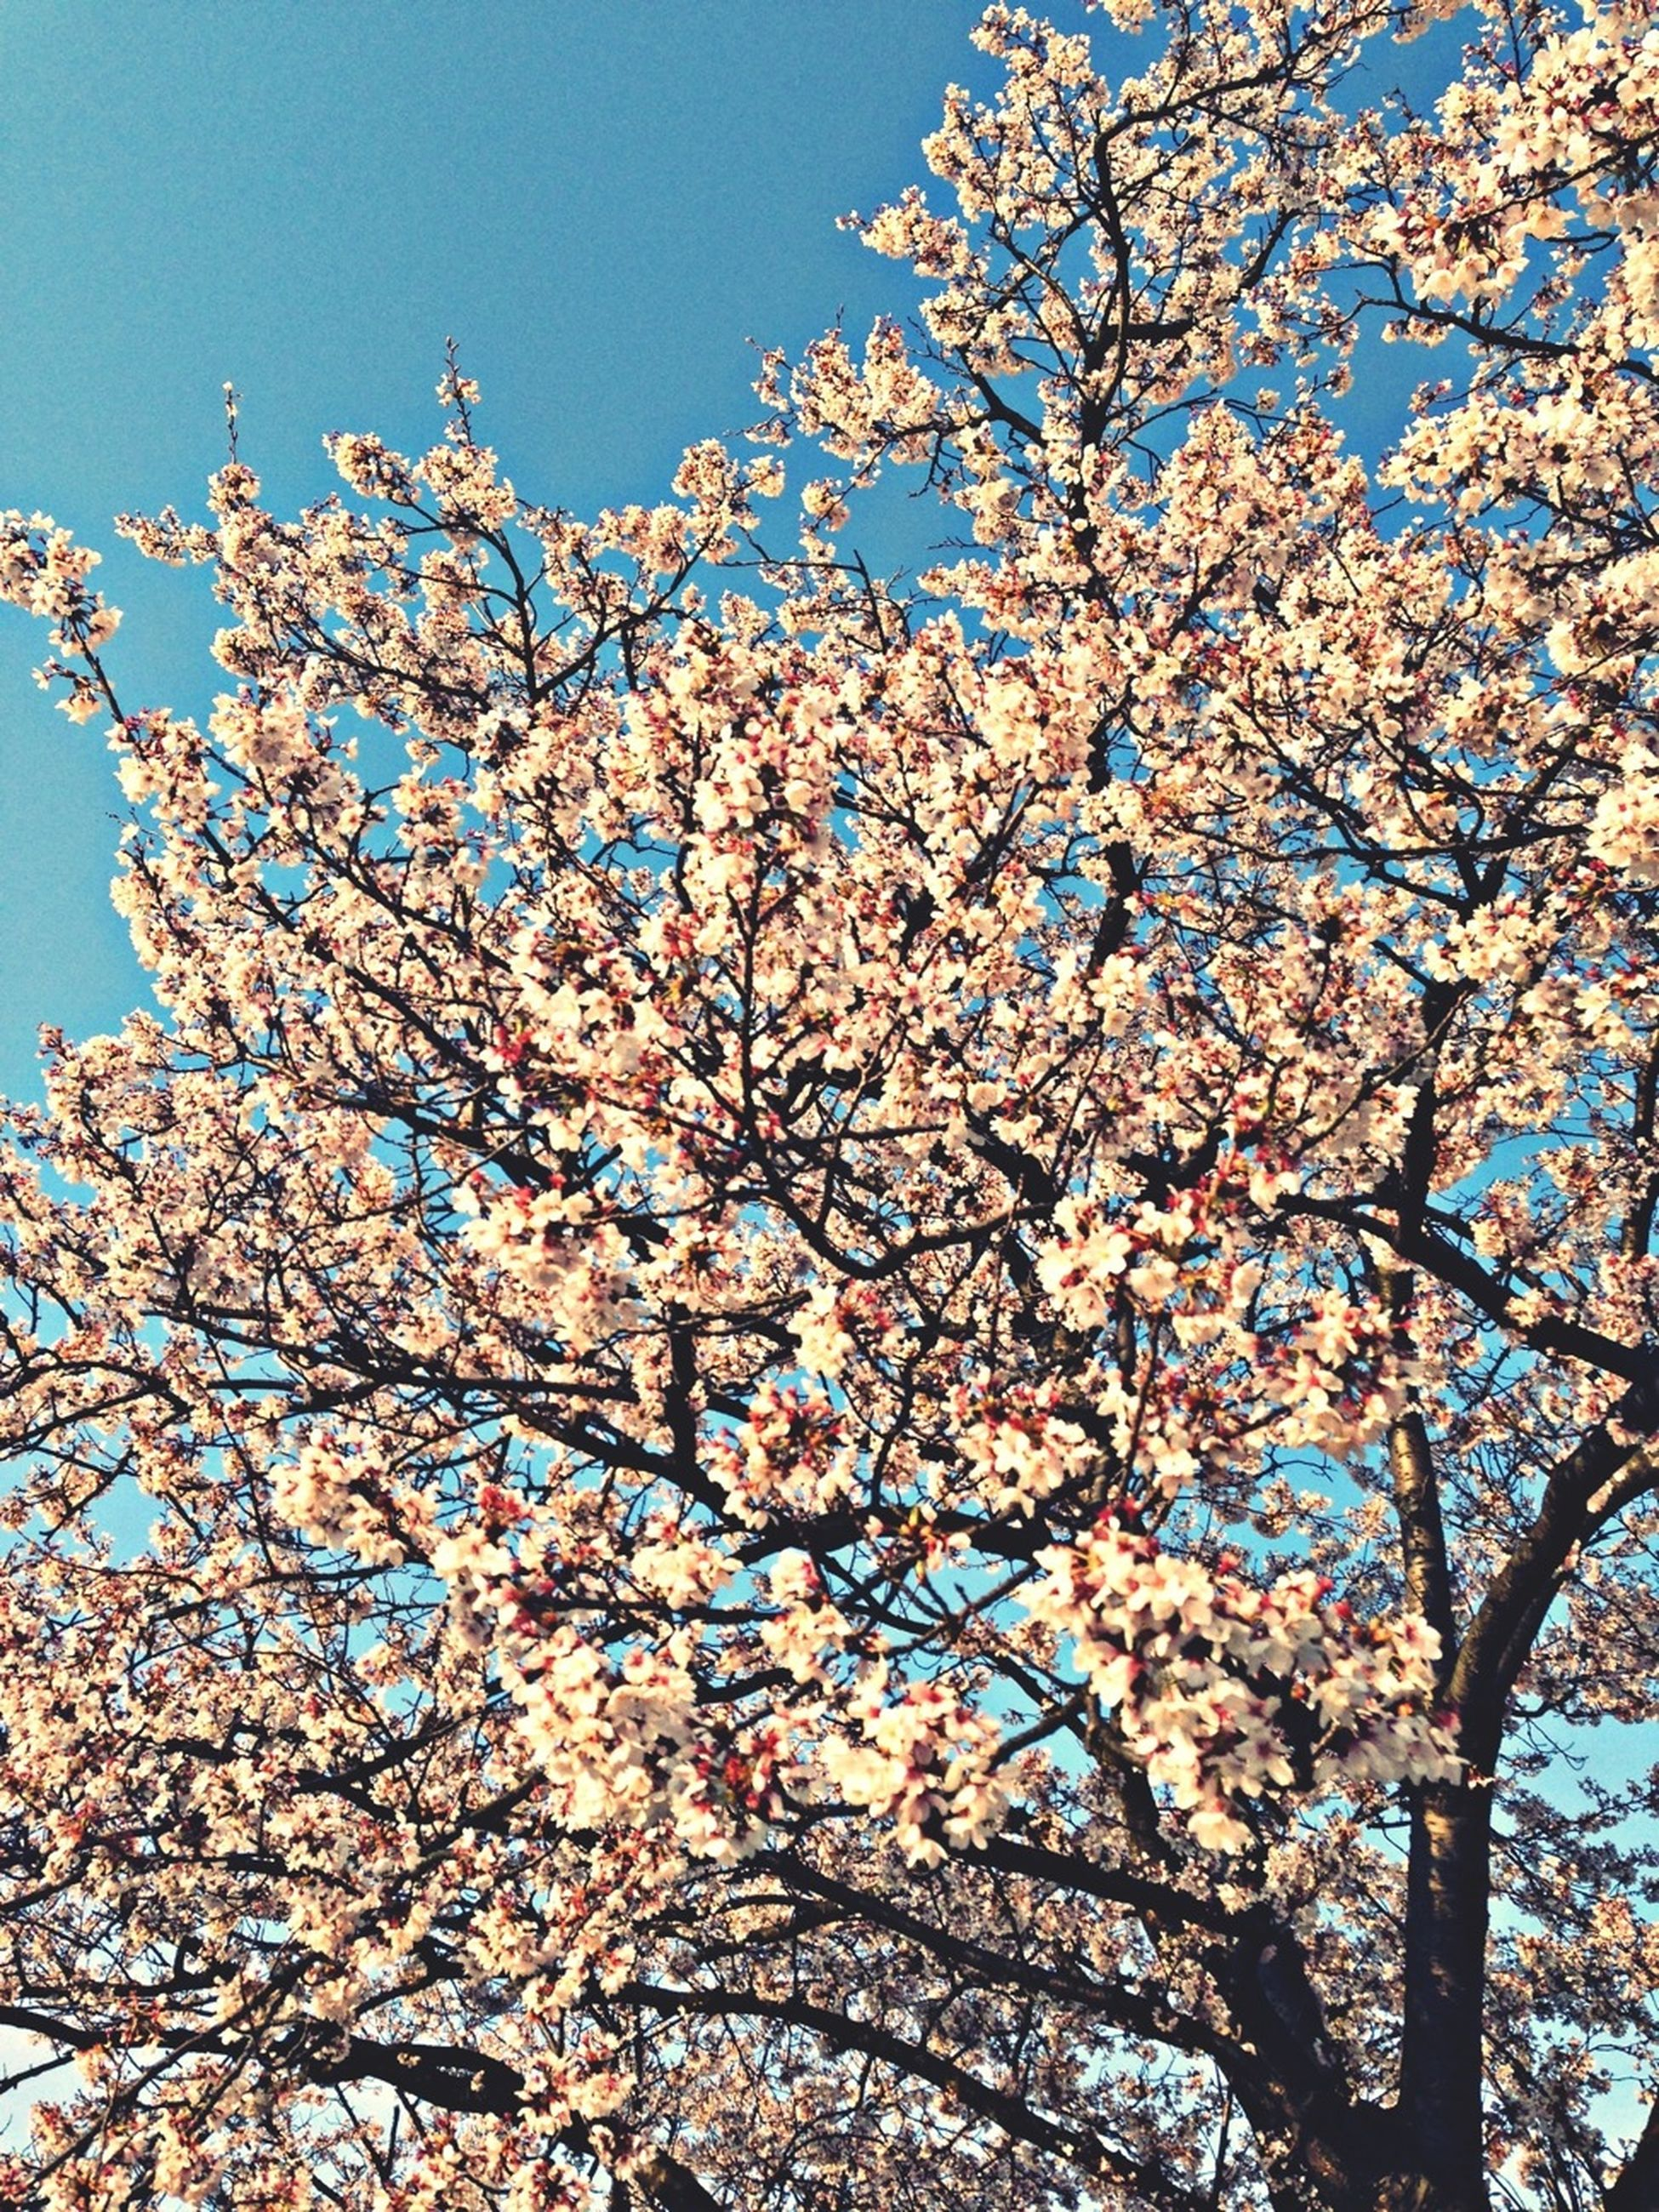 flower, low angle view, tree, branch, freshness, growth, blossom, fragility, beauty in nature, cherry blossom, clear sky, nature, cherry tree, blooming, in bloom, springtime, blue, sky, day, sunlight